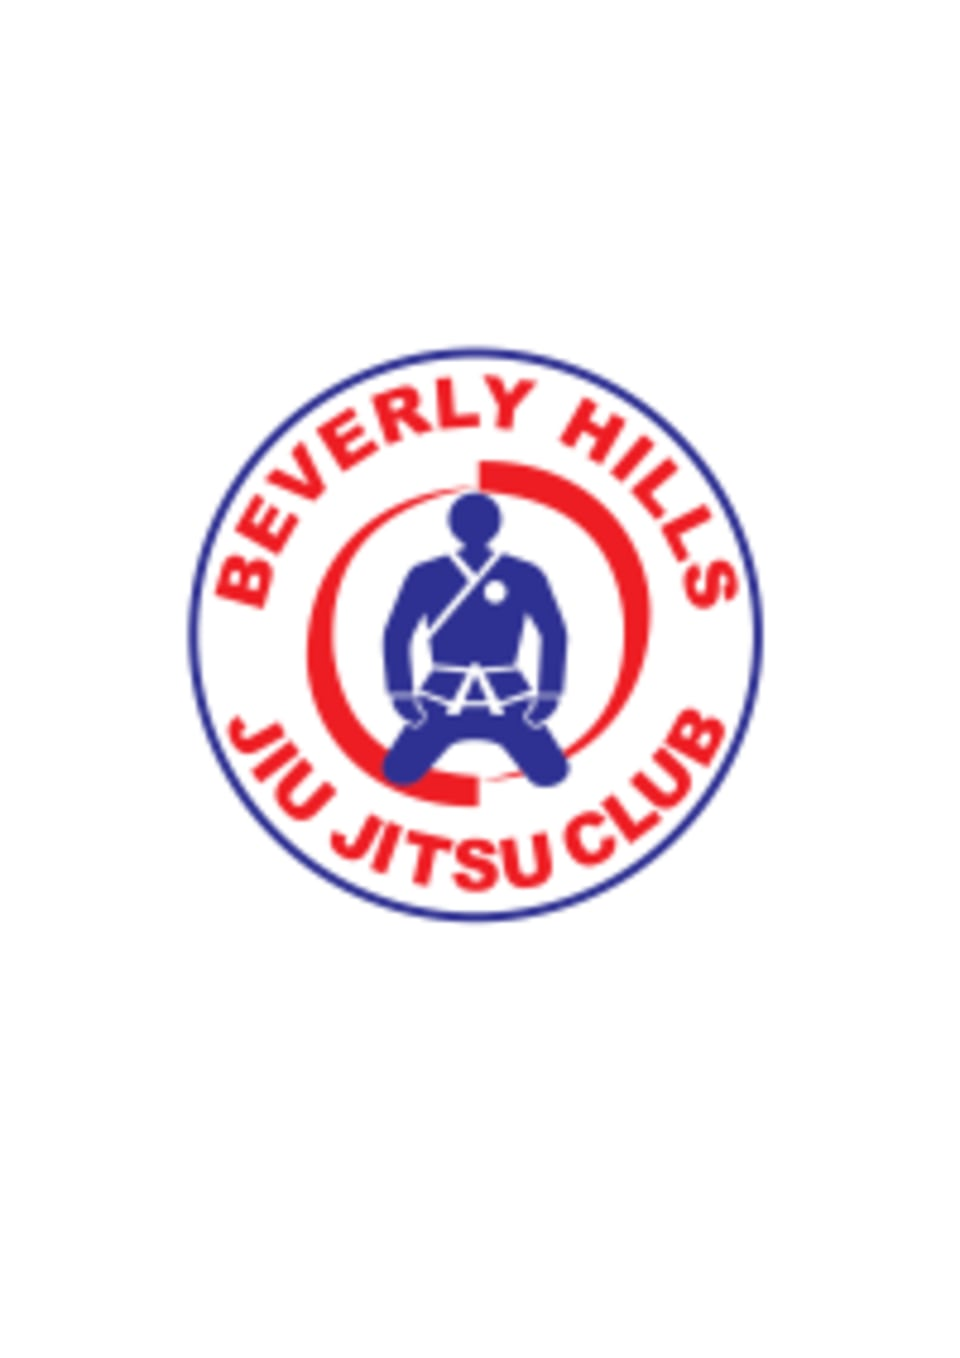 Beverly Hills Jiu Jitsu Club logo